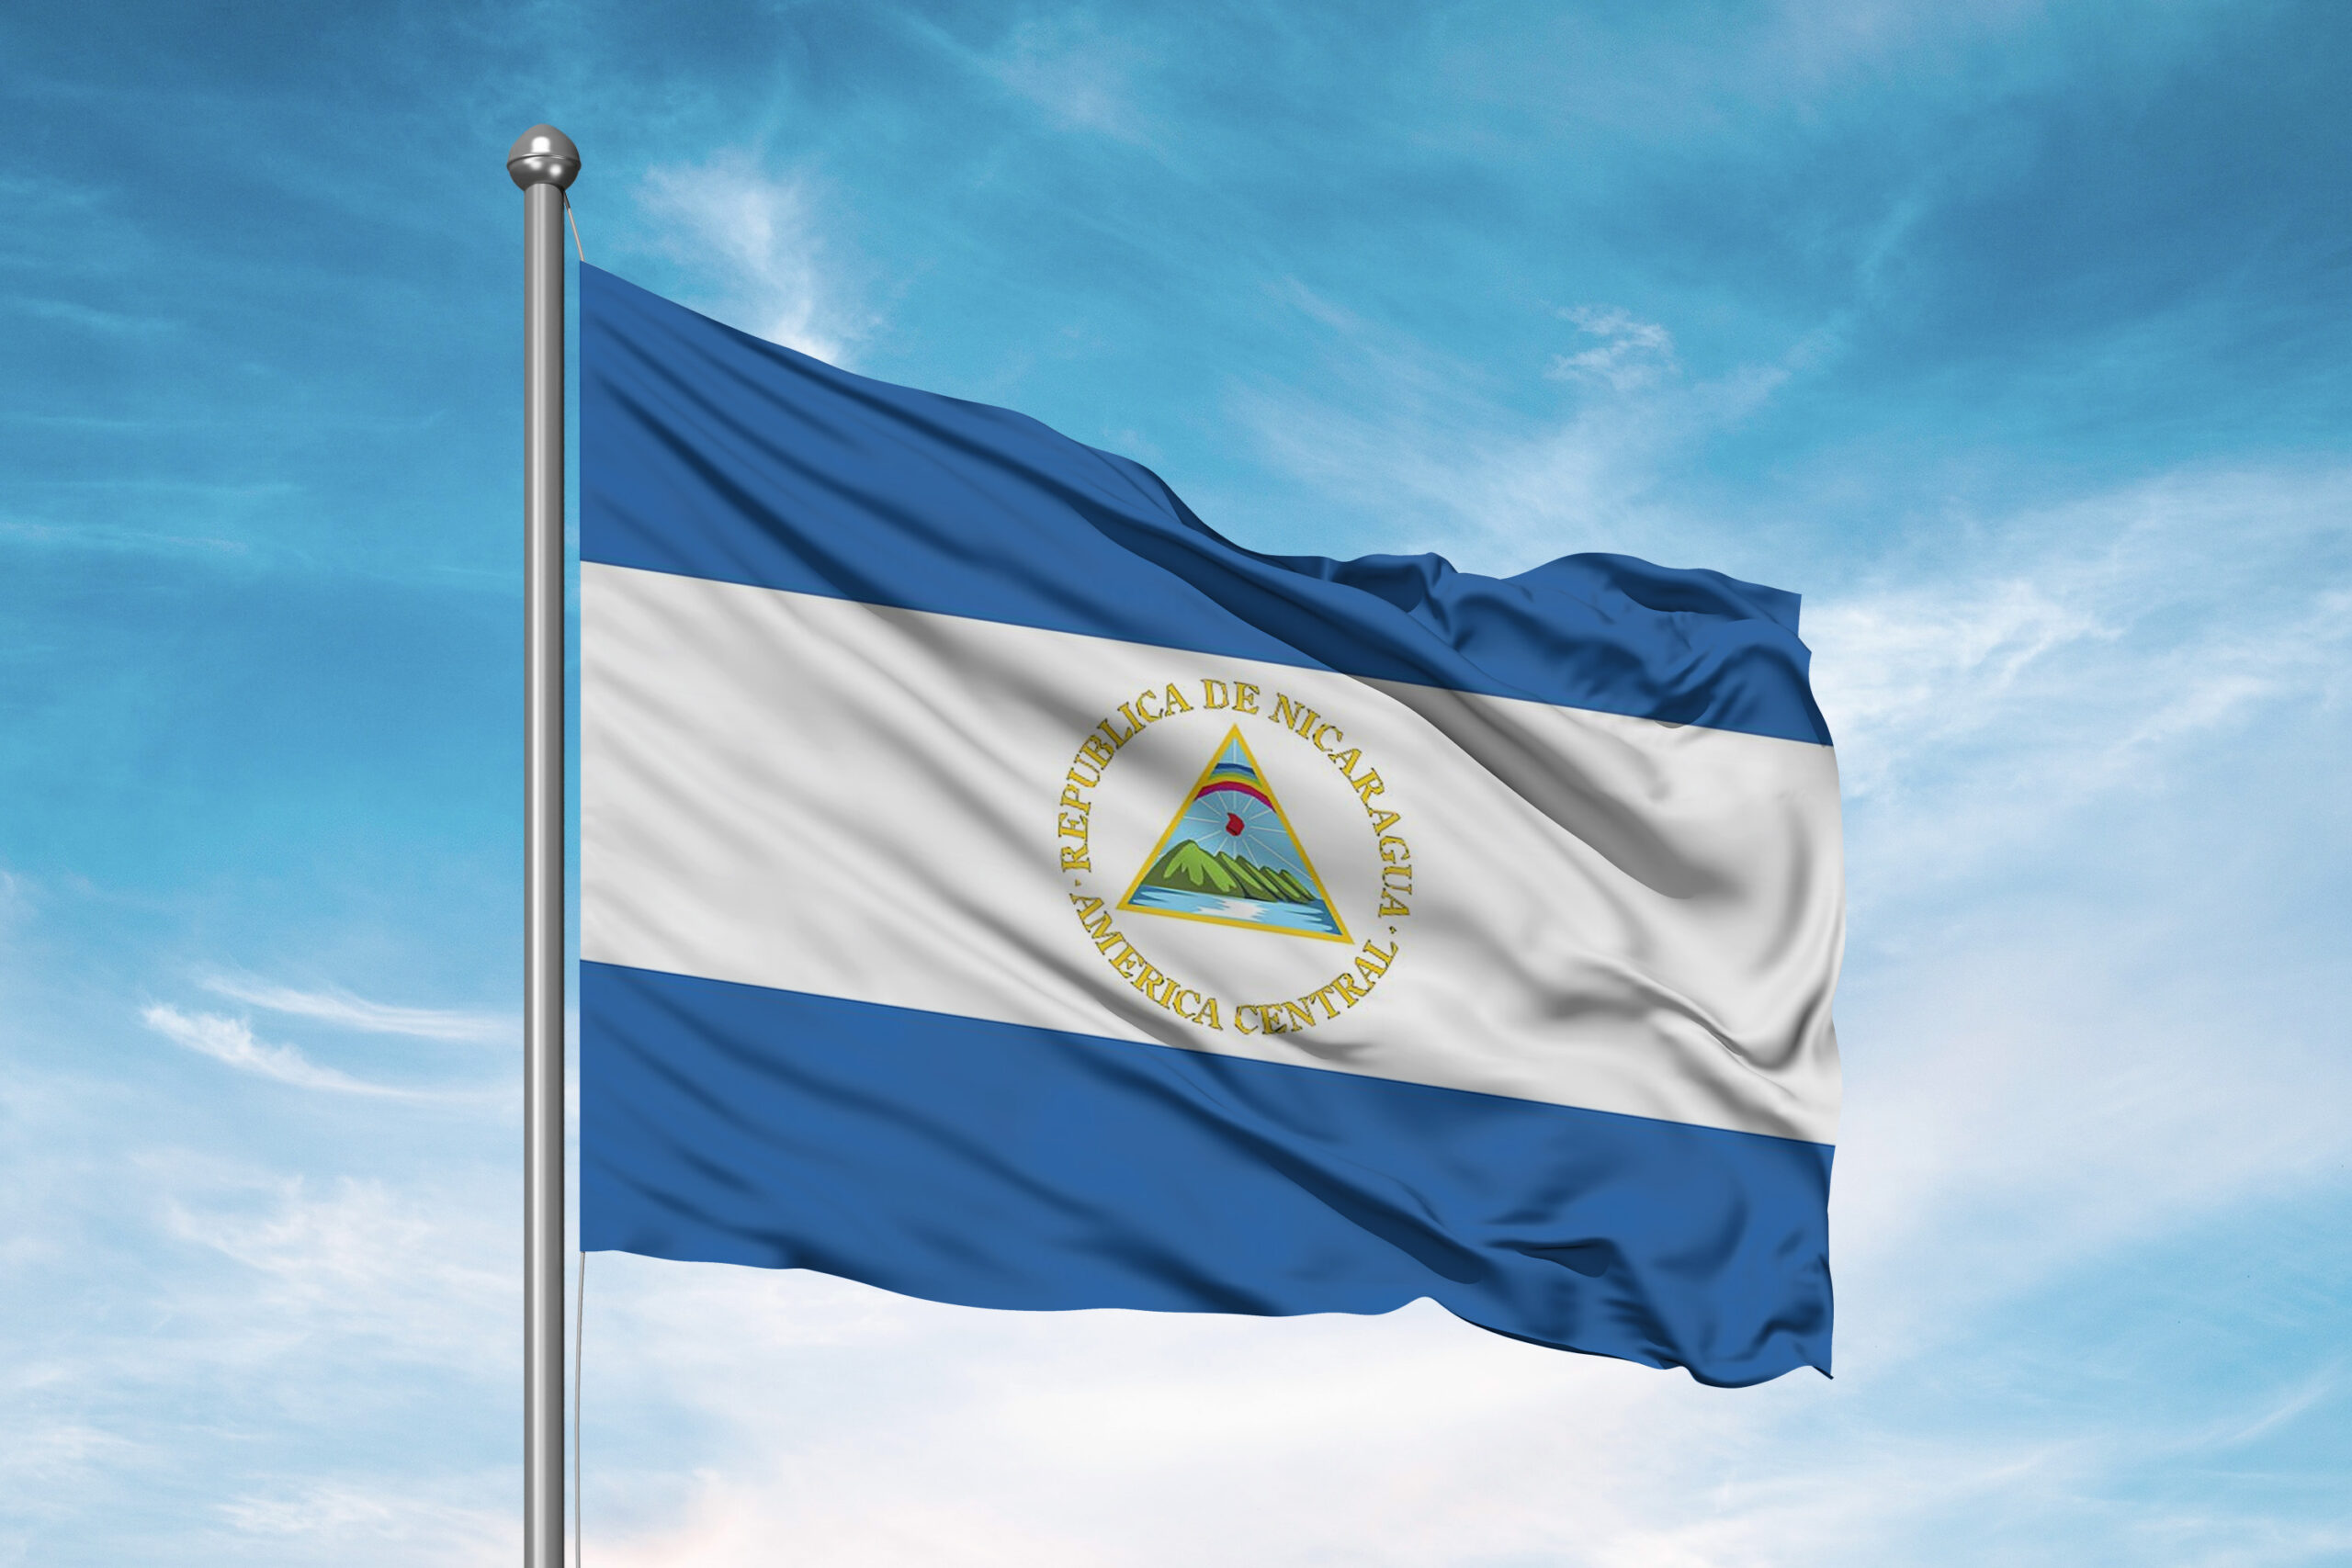 Quiz About Flags: The flag of Nicaragua